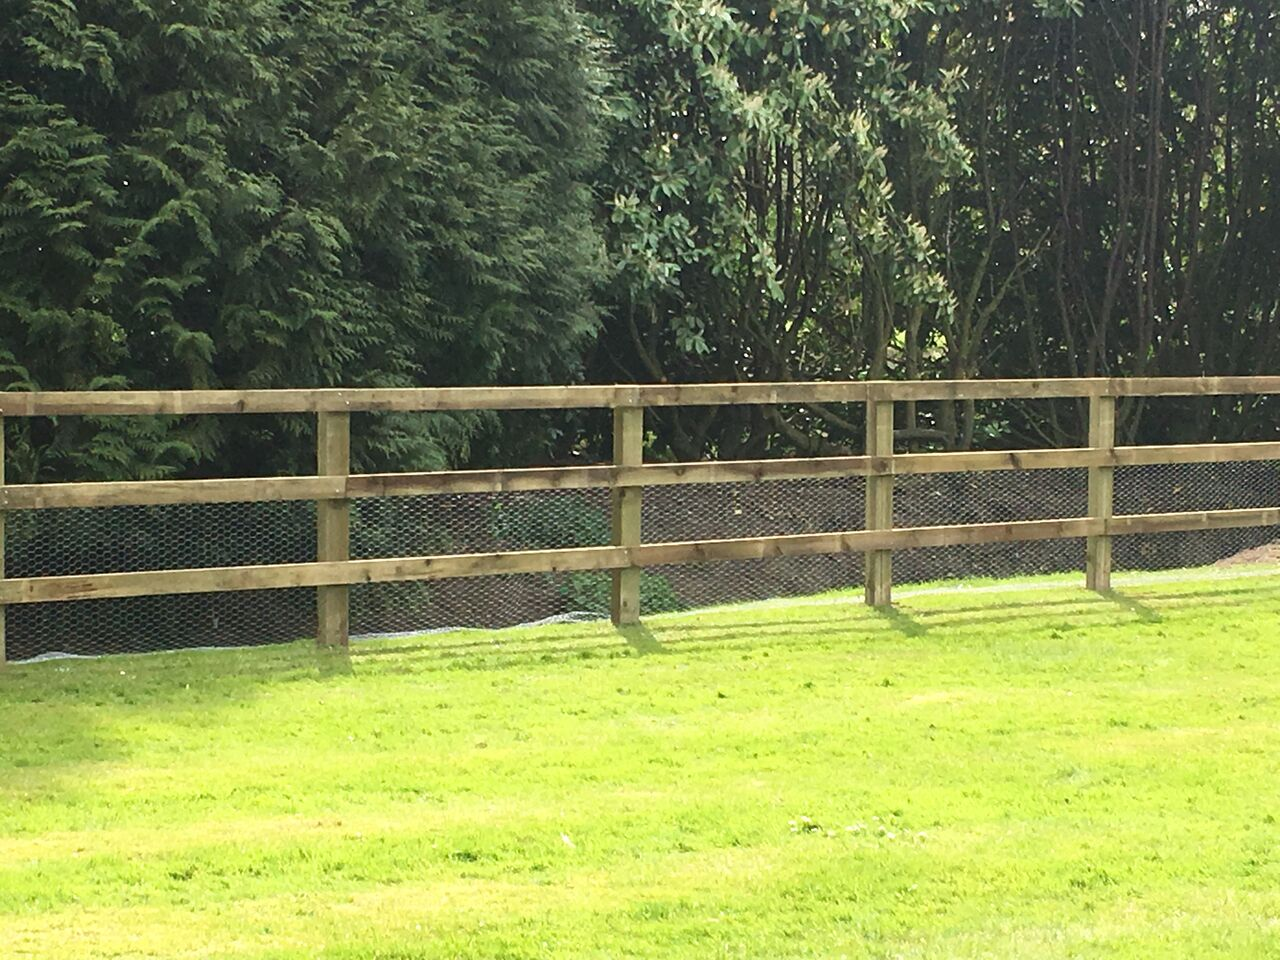 Post and rail fencing with rabbit wire to keep wildlife out